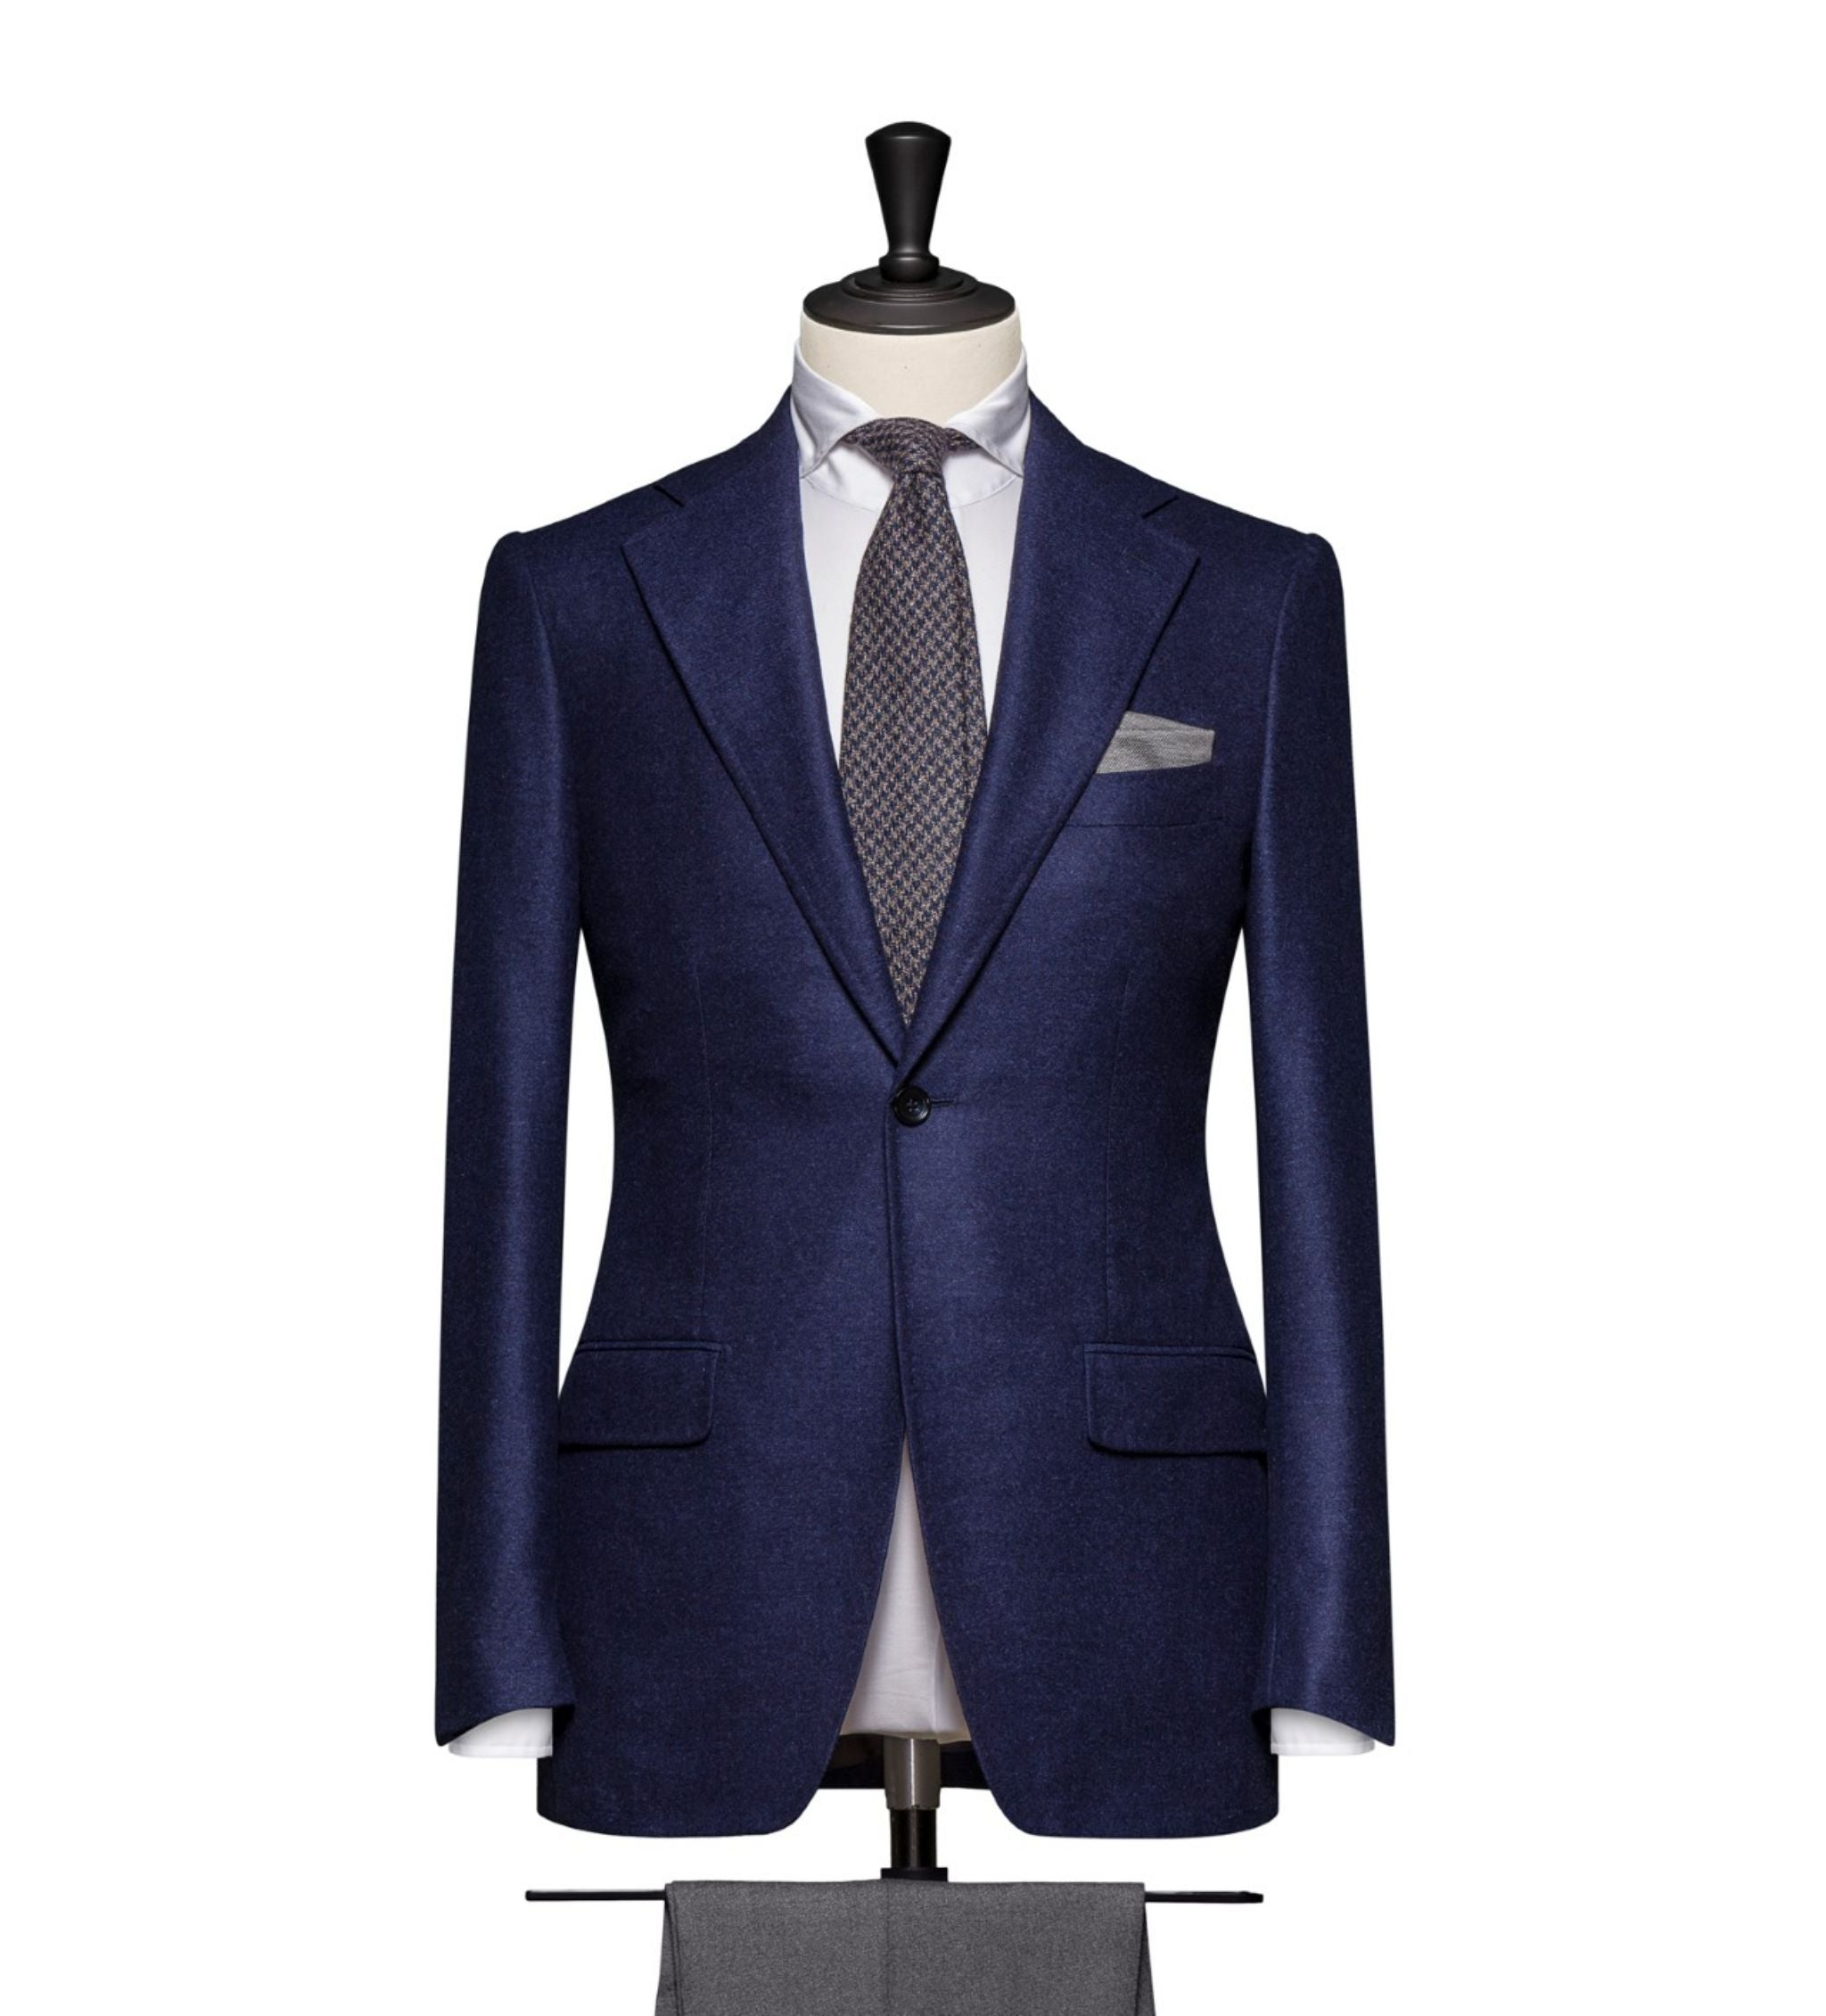 How to combine suits and sport coats - navy blue blazer with gray flannel trousers